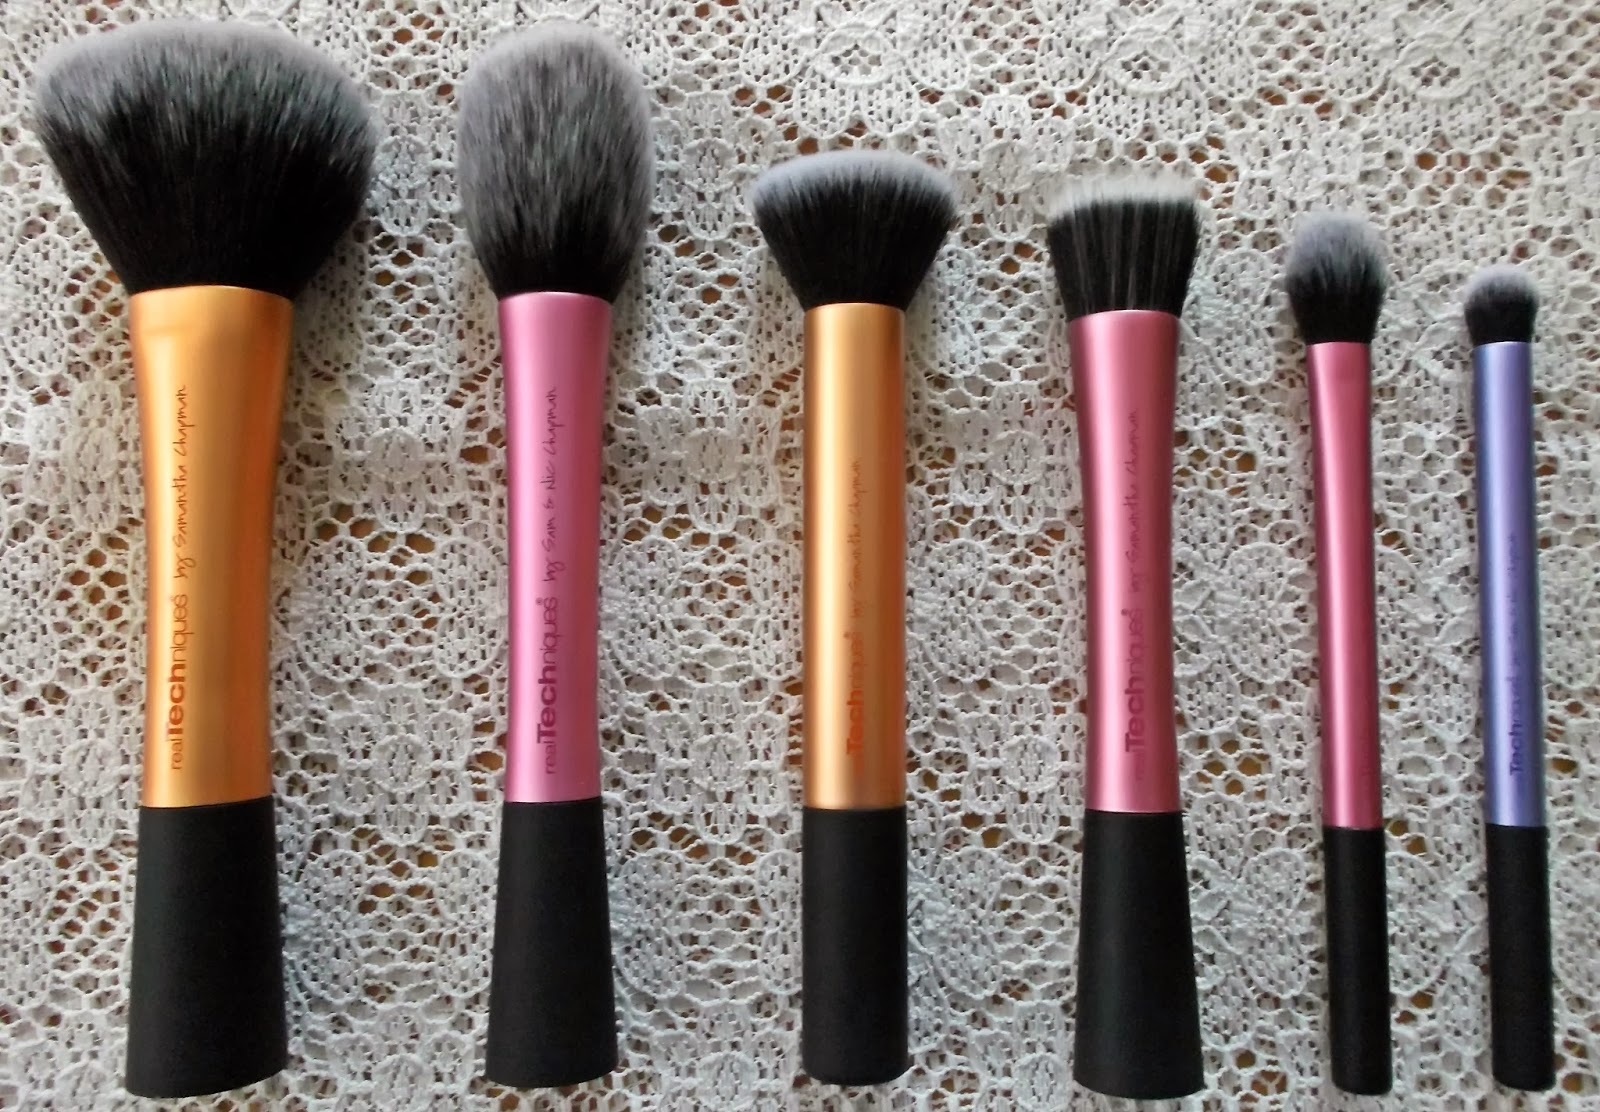 makeup brushes tumblr. i have the entire collection but chose to review brushes that was requested on tumblr and here review. warning: this is going be a very long makeup